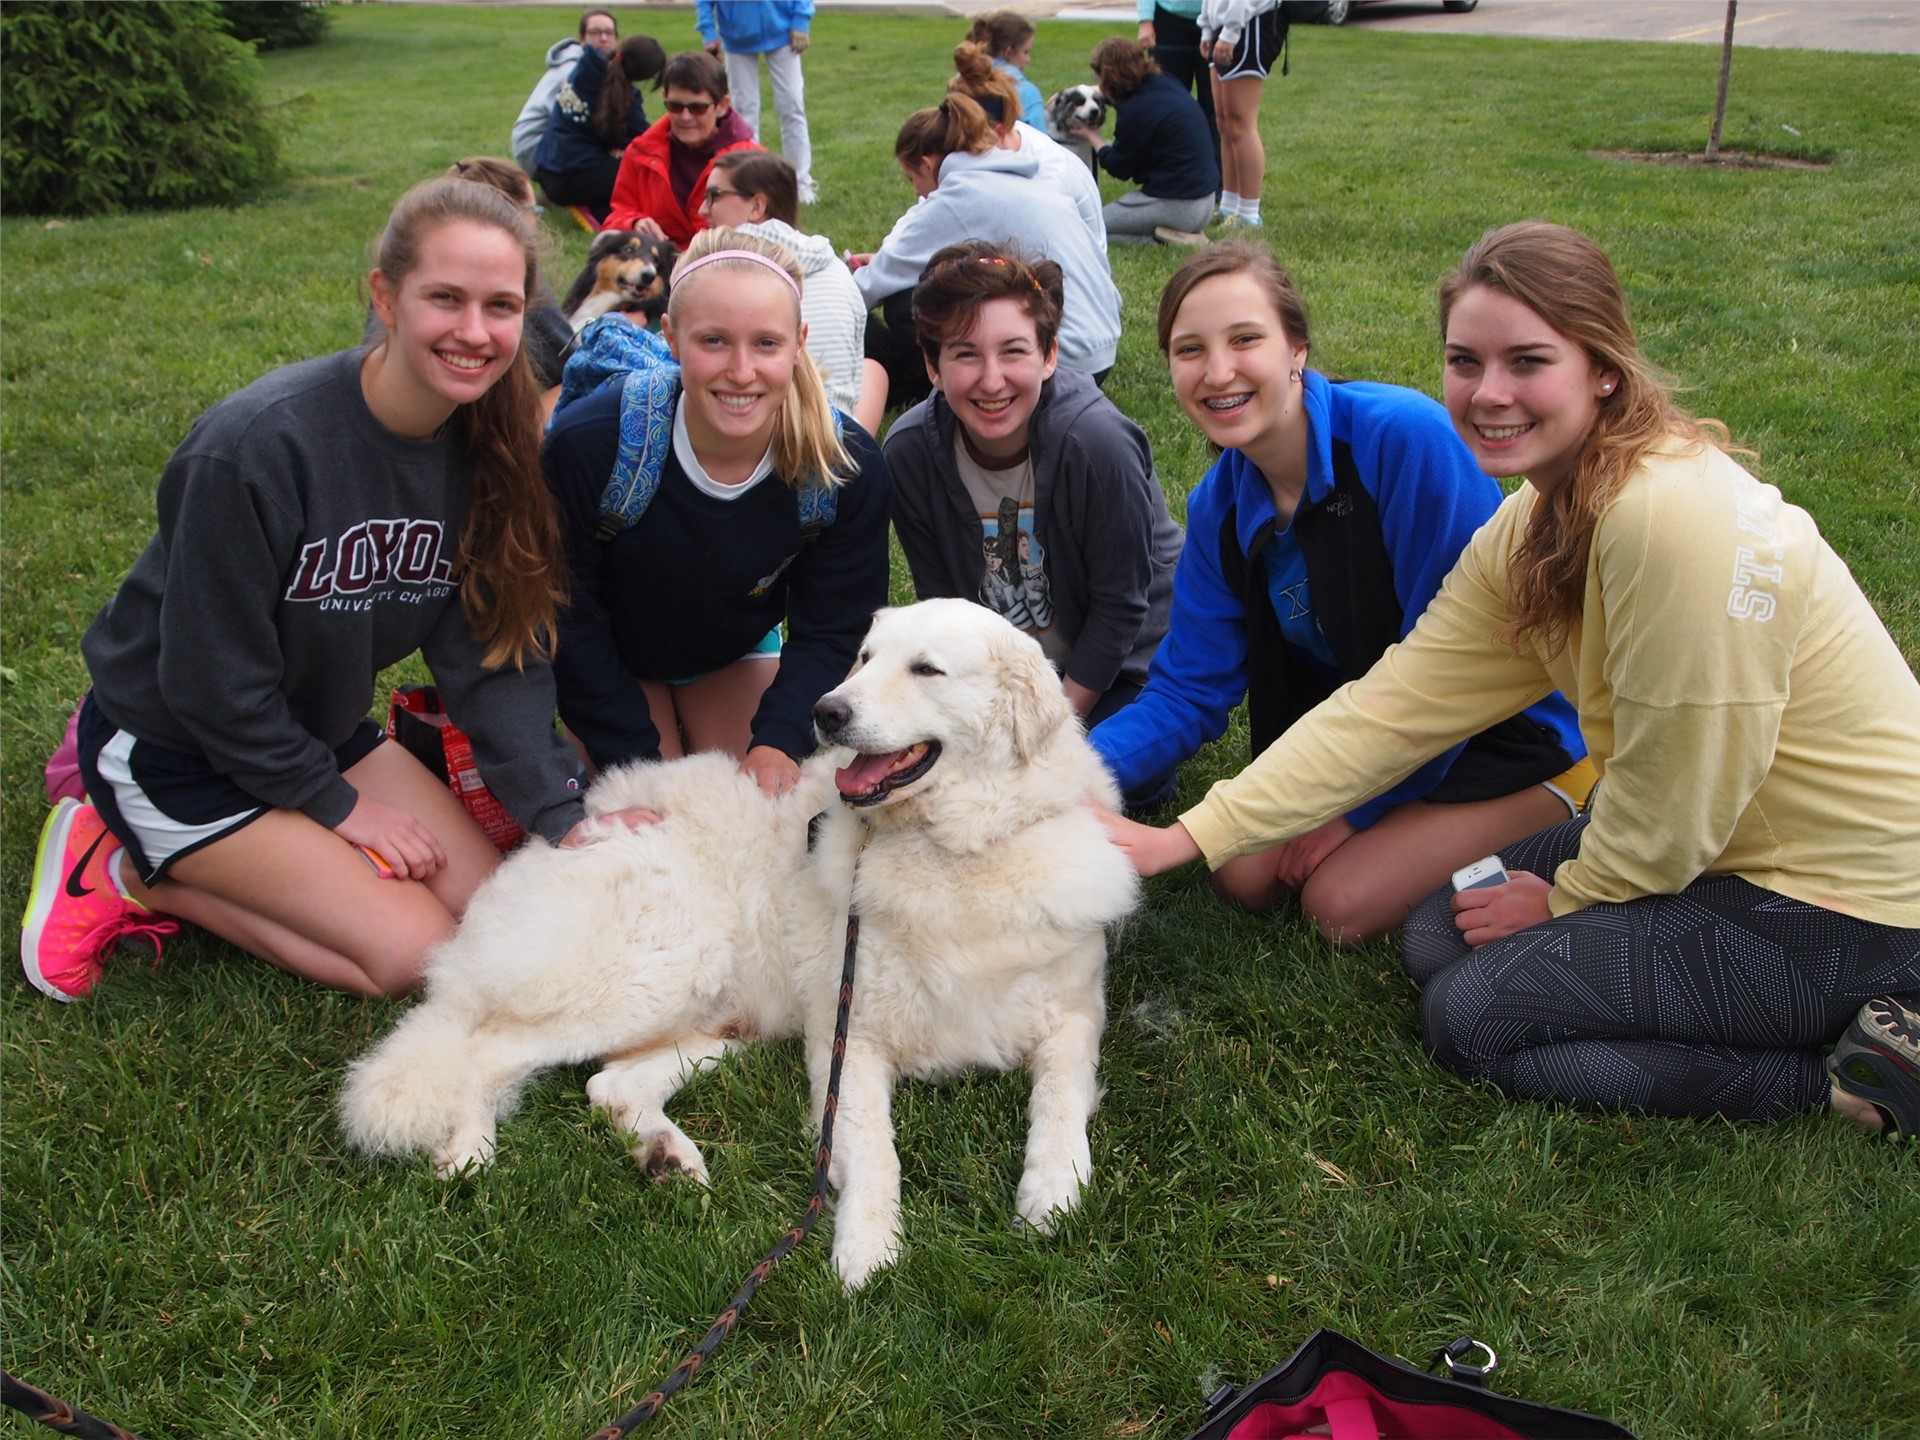 Students took a break between final exams to pet a furry friend